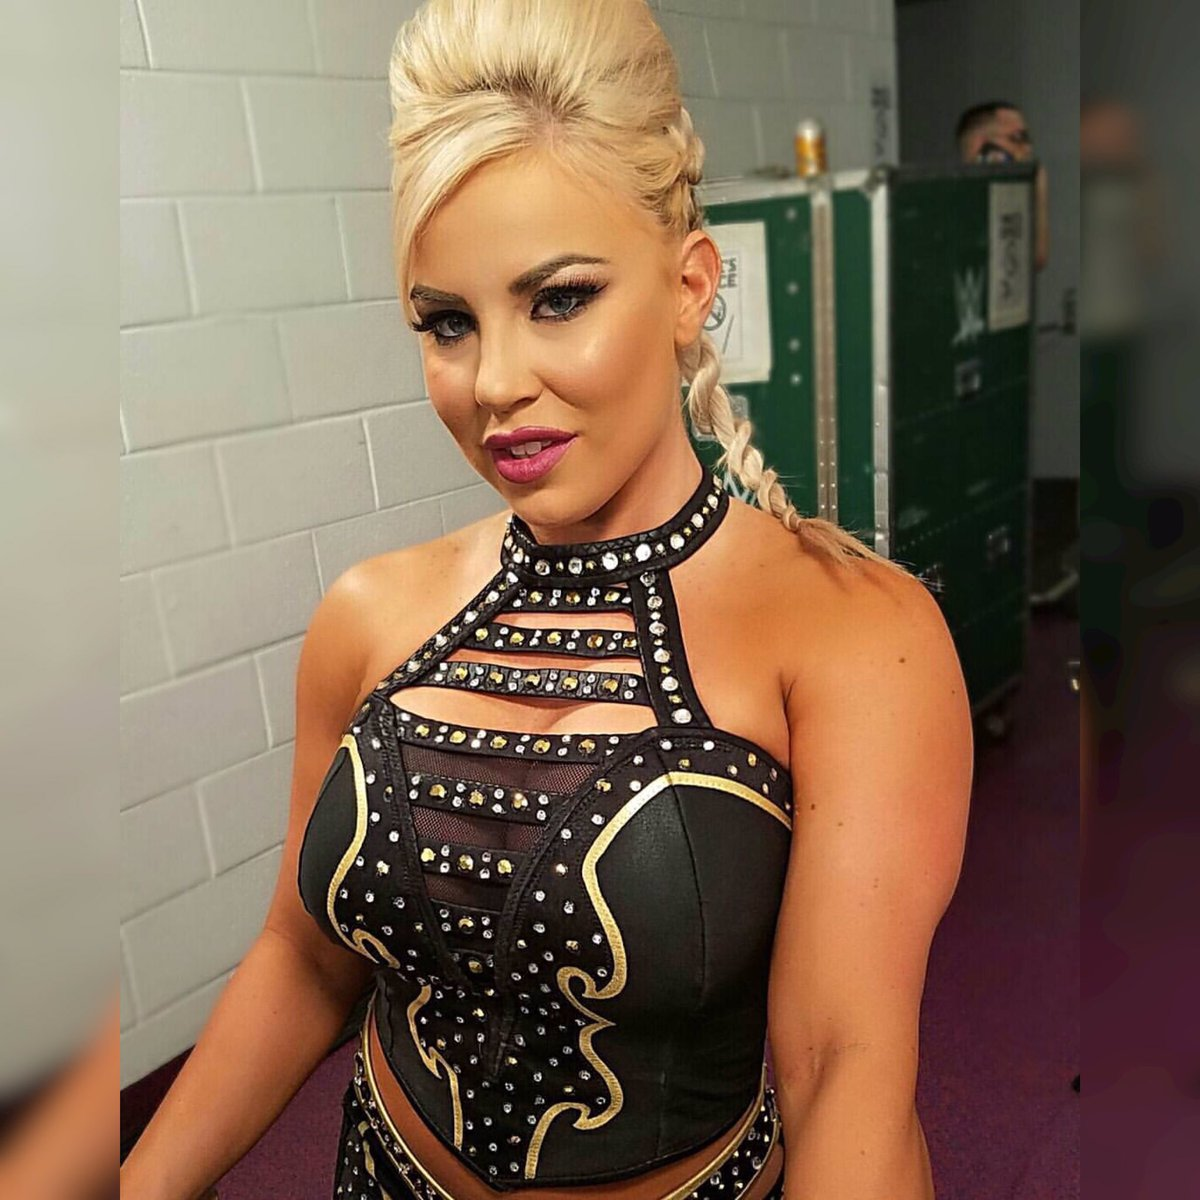 Instagram Dana Brooke nudes (81 foto and video), Tits, Is a cute, Twitter, bra 2020